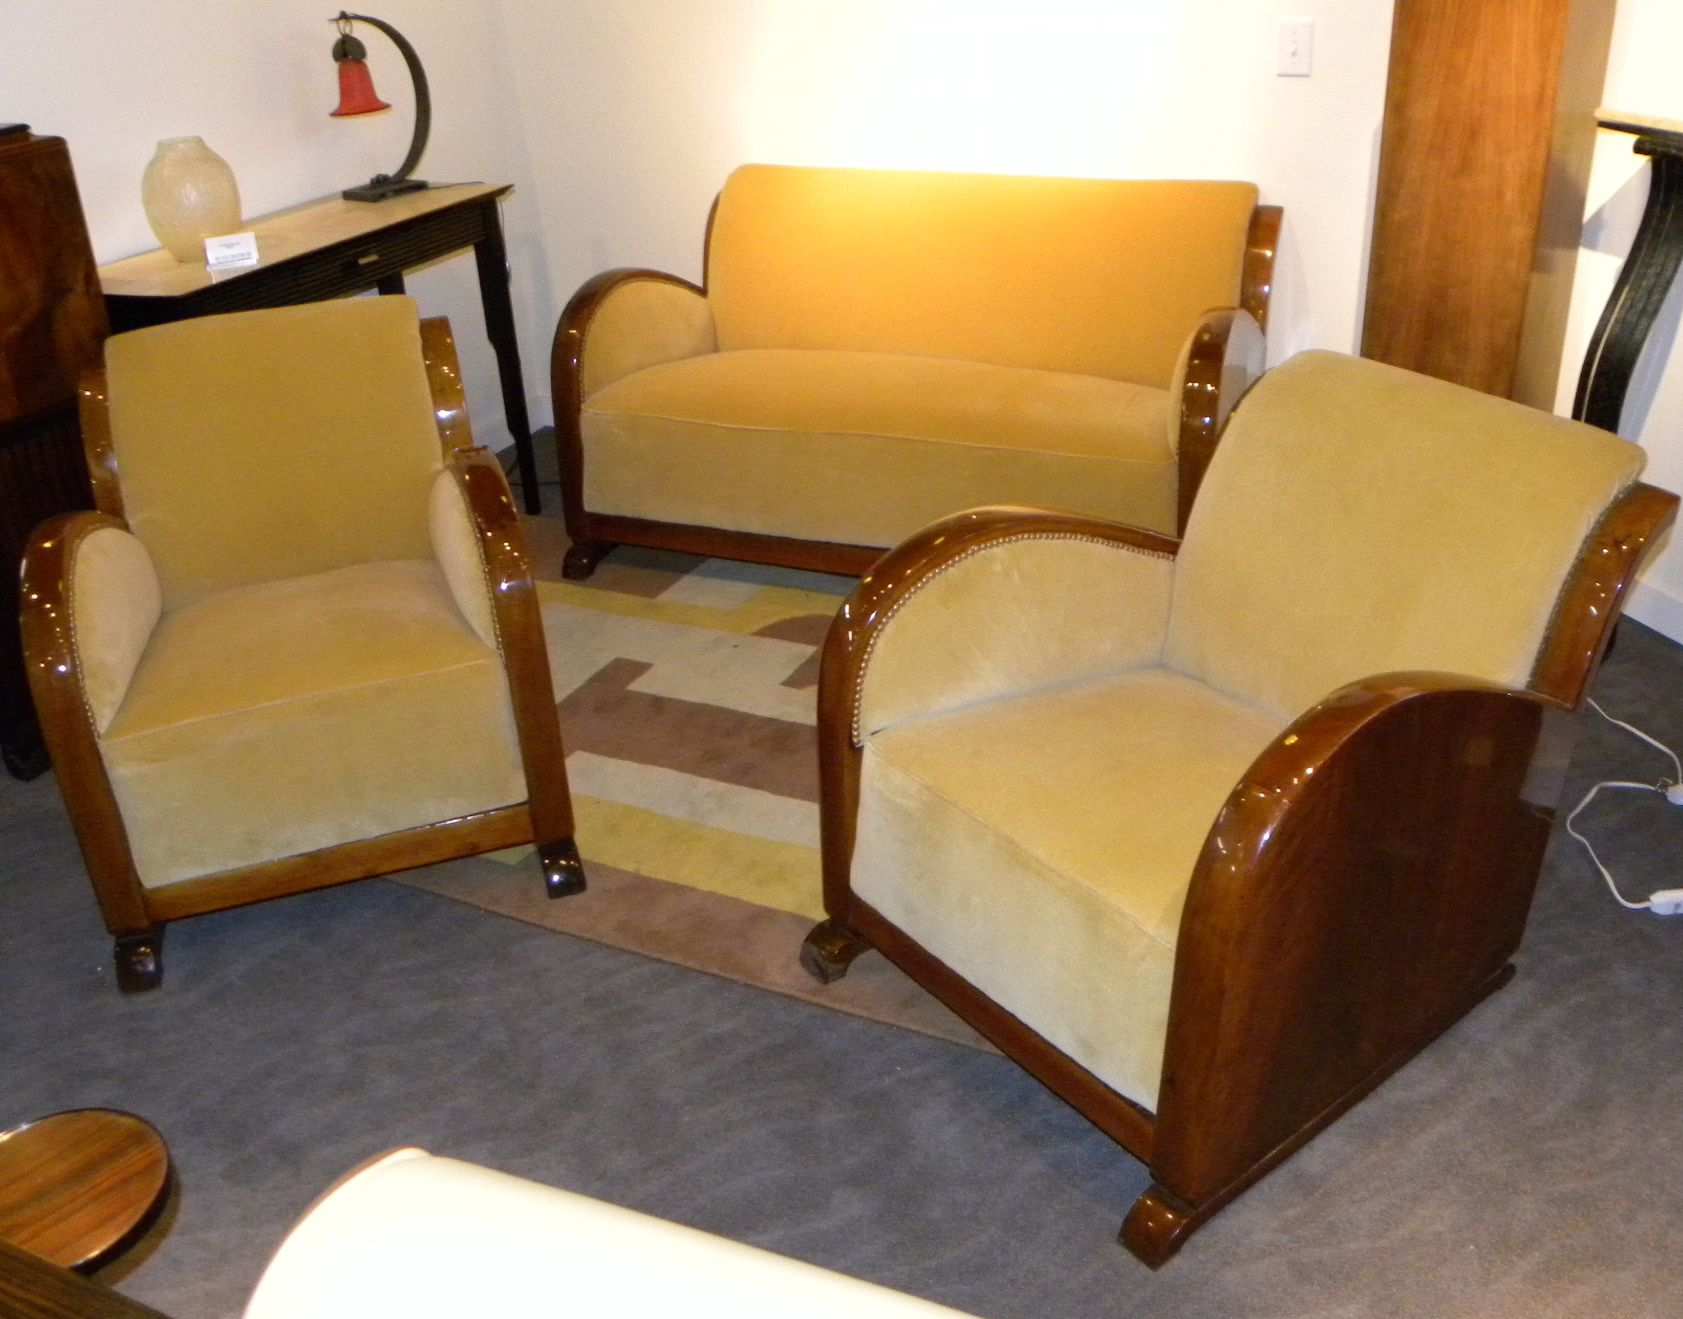 Art Deco Furniture: Art Deco Furniture Sold